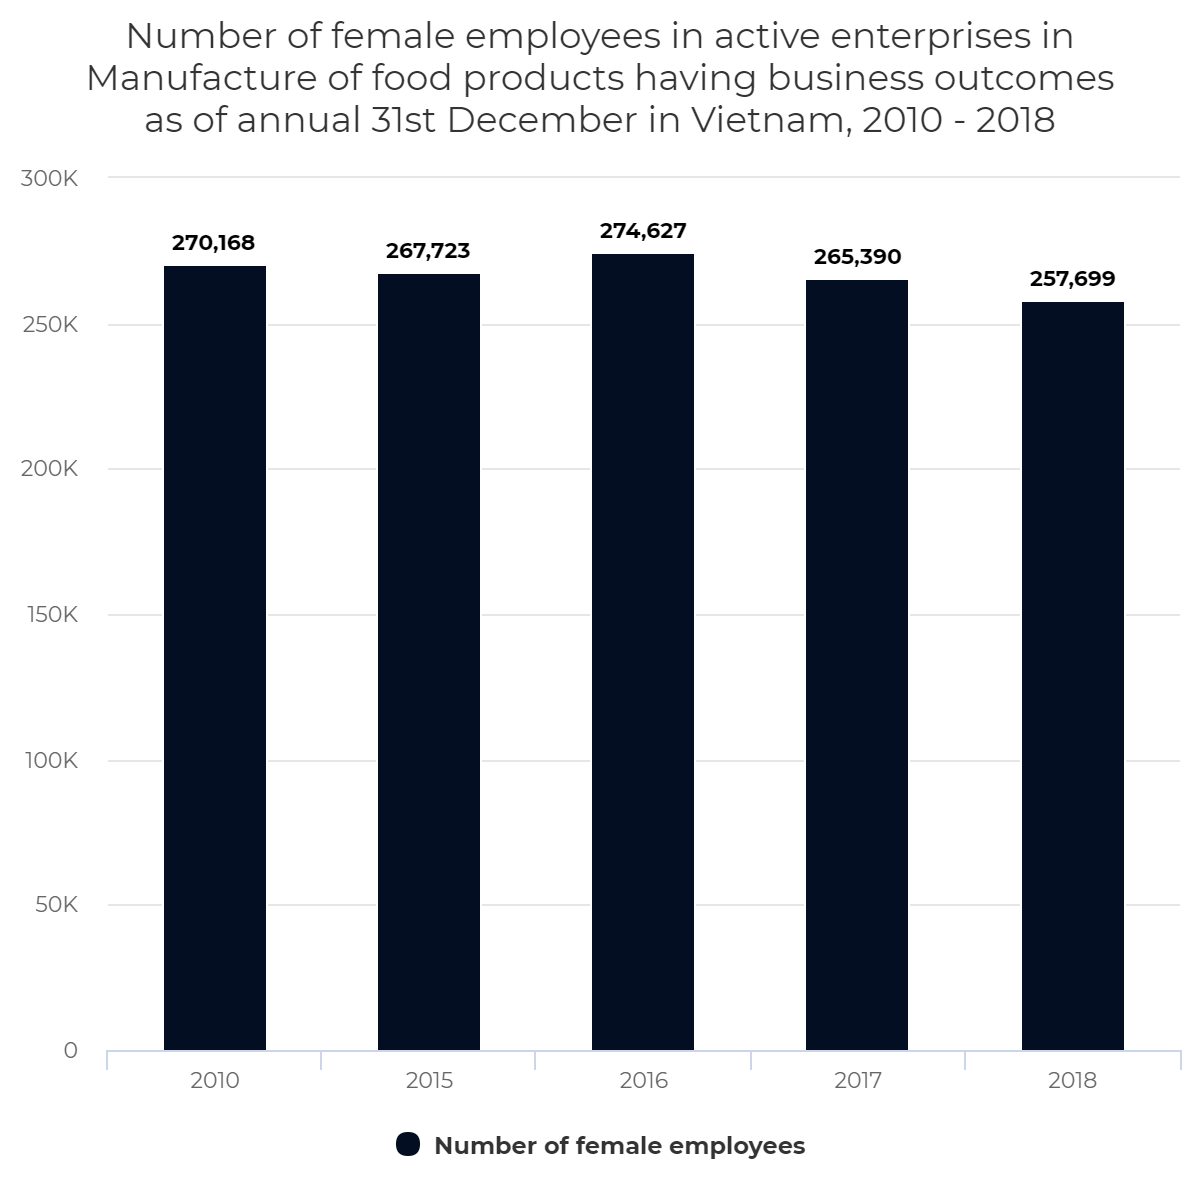 Number of female employees in active enterprises in Manufacture of food products having business outcomes as of annual 31st December in Vietnam, 2010 – 2018